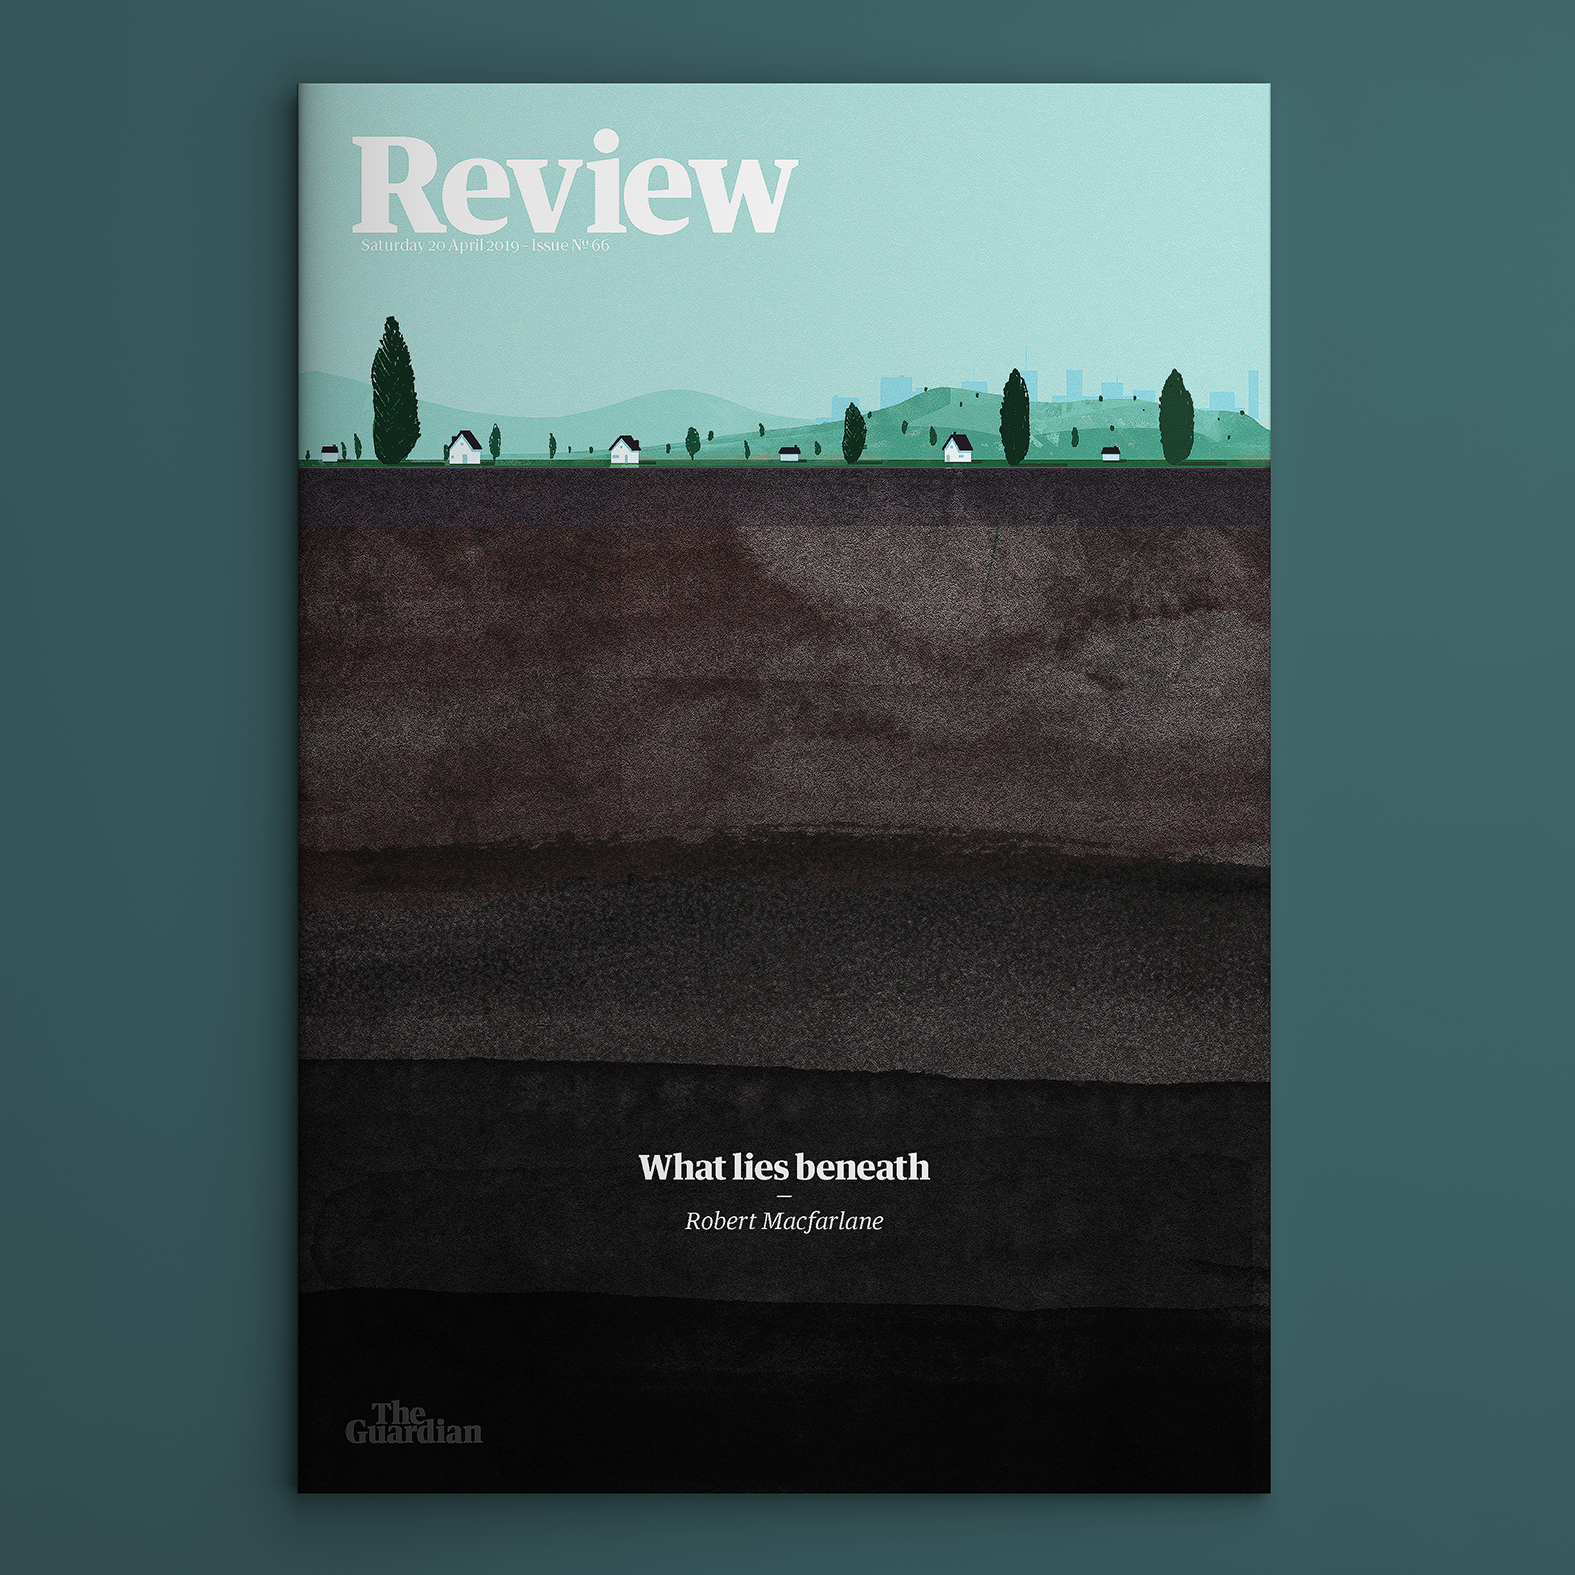 REVIEW db Cover.jpg